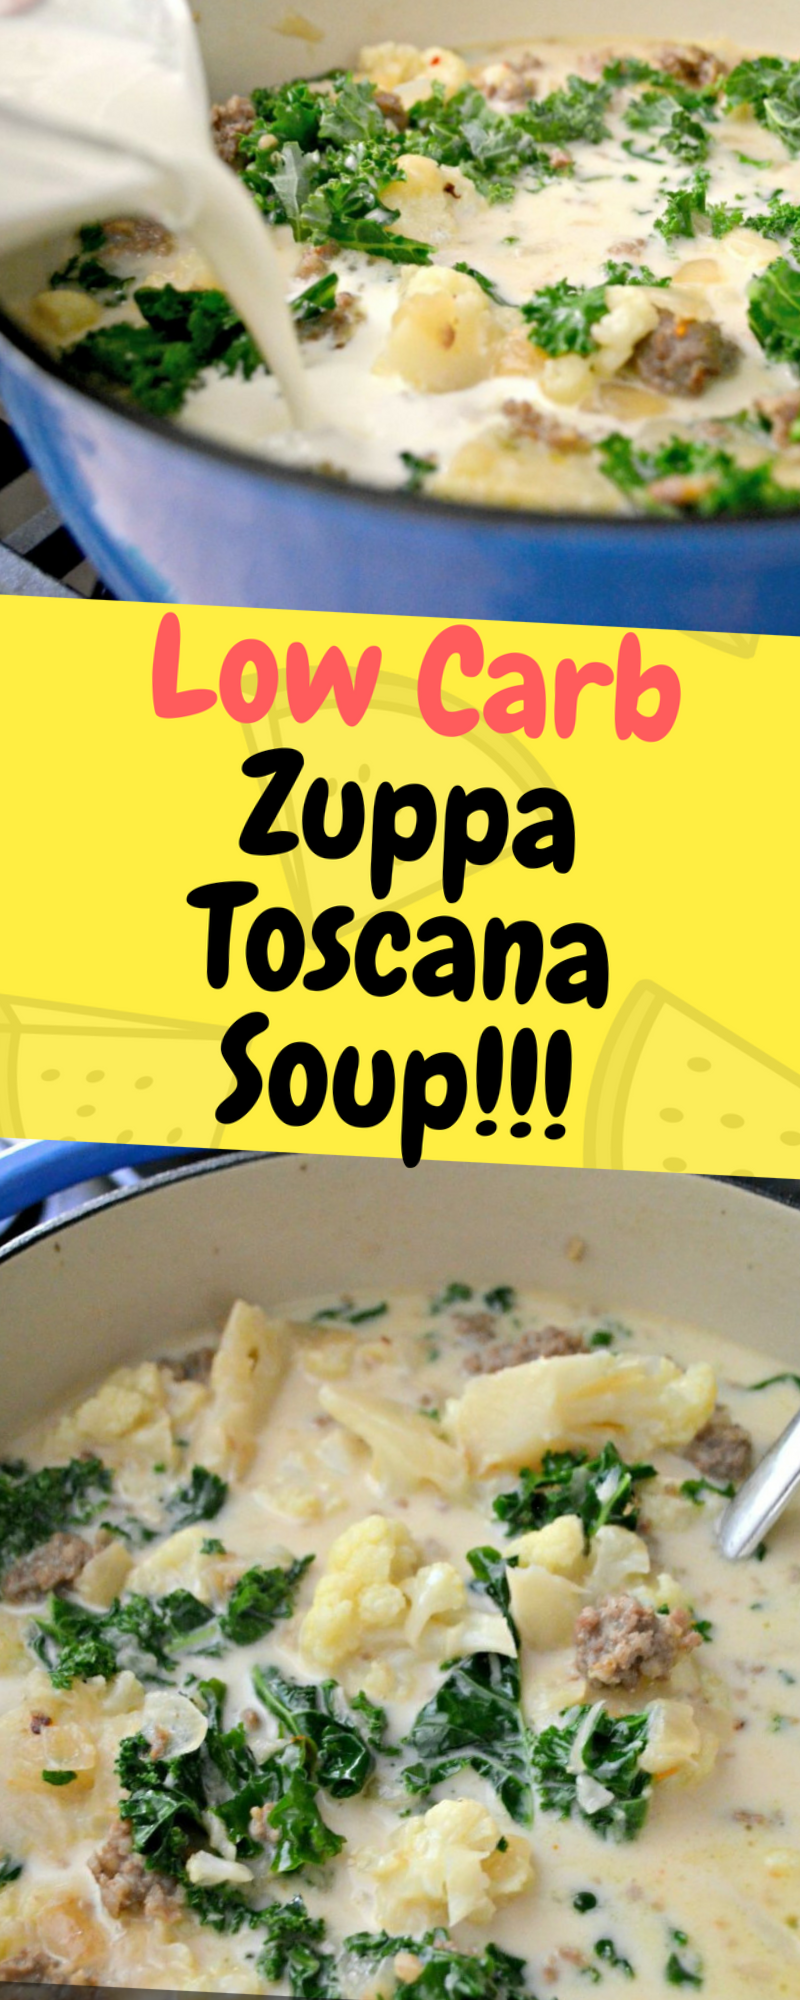 Low Carb Zuppa Toscana Soup - One of food #zuppatoscanasoup Low Carb Zuppa Toscana Soup - One of food #zuppatoscanasoup